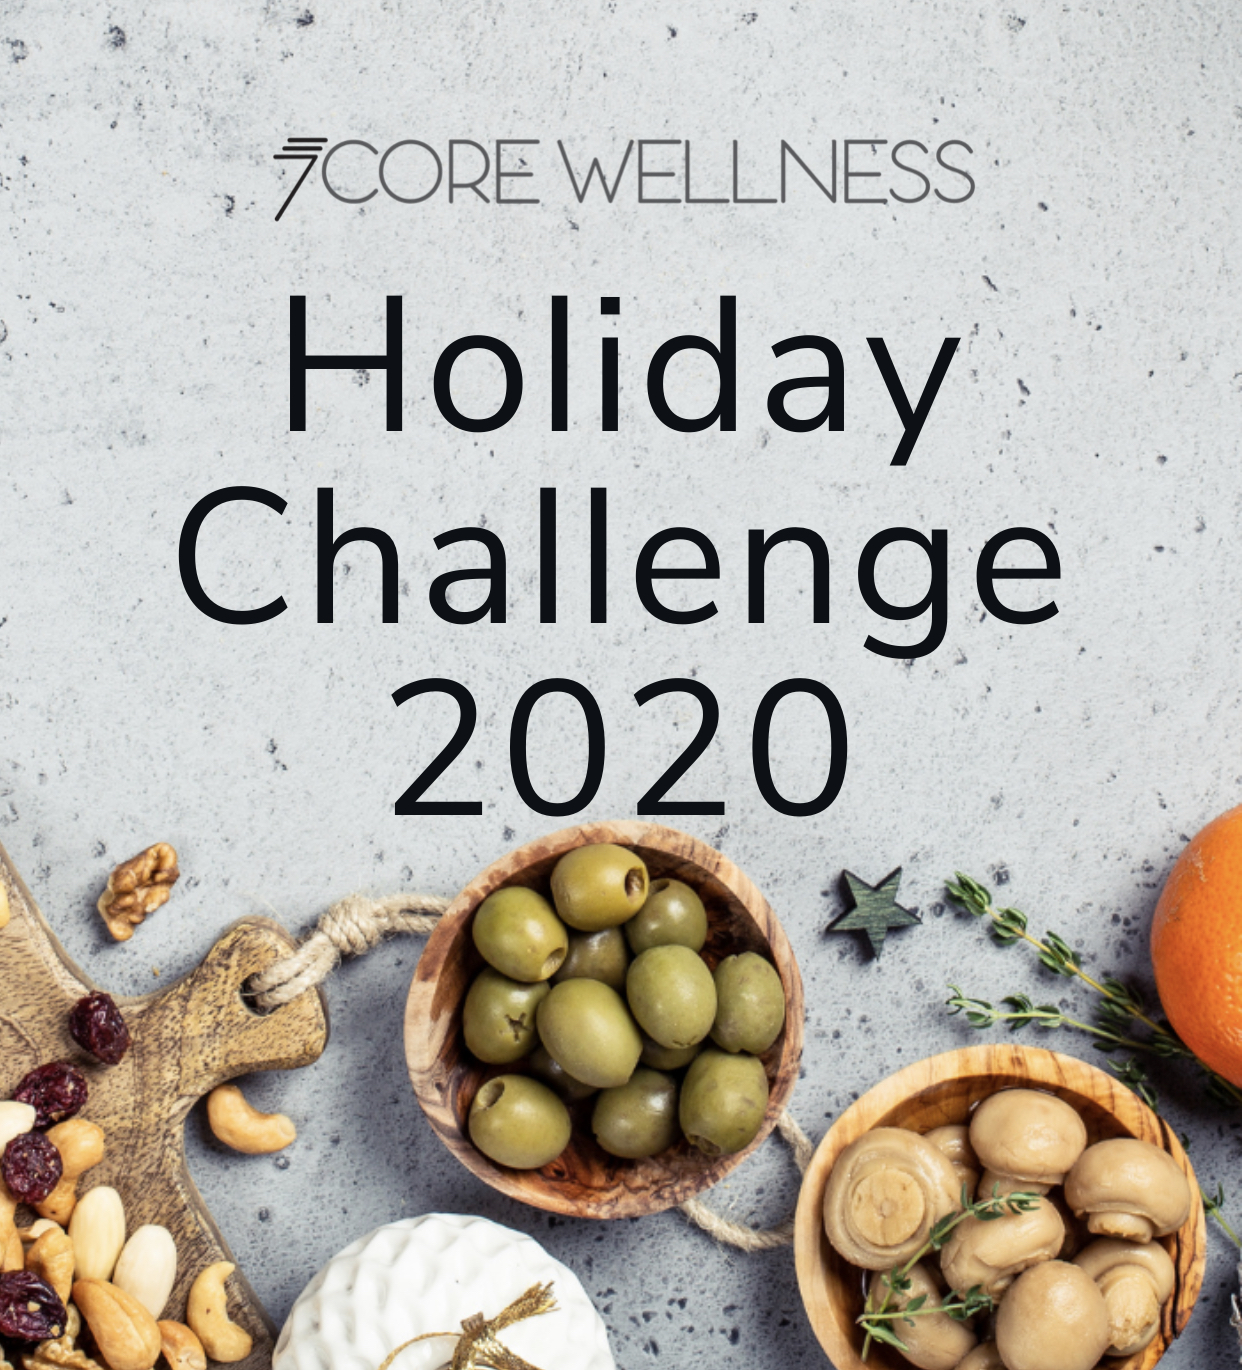 Snacky food with words 'Holiday Challenge 2020'